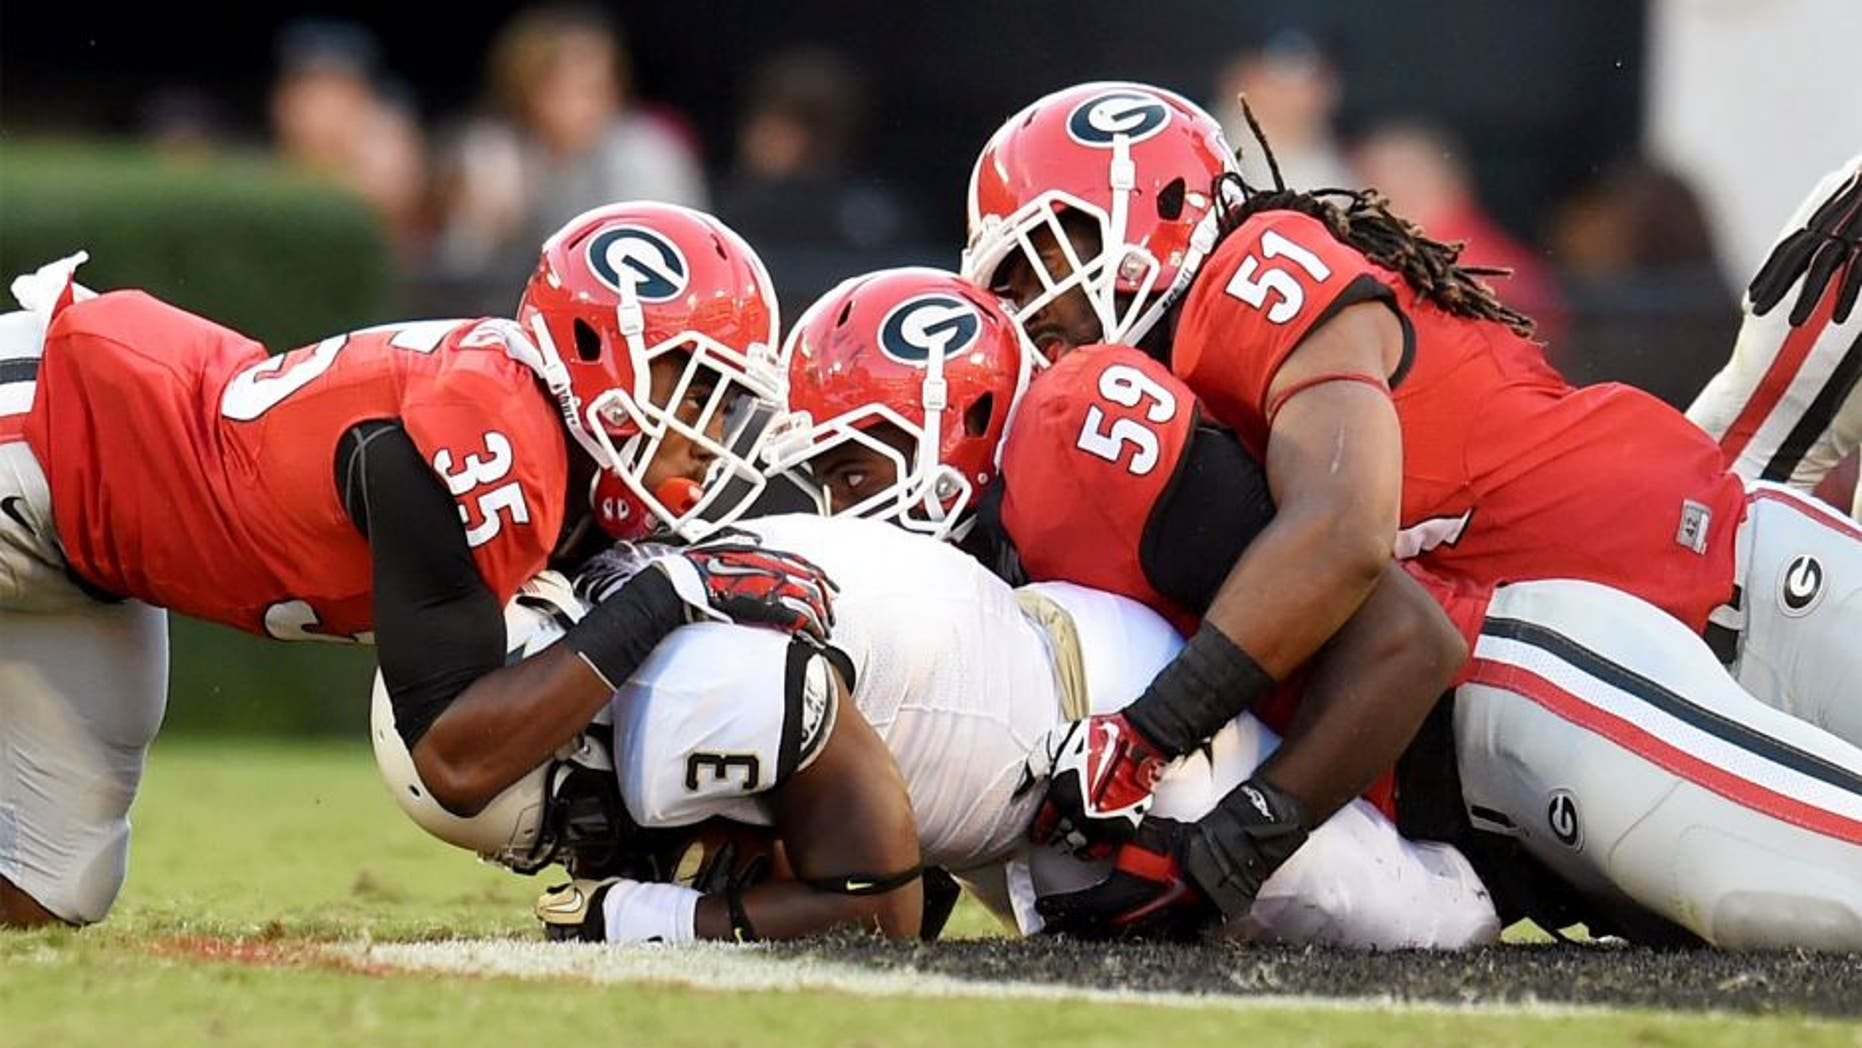 Oct 4, 2014; Athens, GA, USA; Vanderbilt Commodores running back Jerron Seymour (3) is tackled by Georgia Bulldogs cornerback Aaron Davis (35) linebacker Jordan Jenkins (59) and linebacker Ramik Wilson (51) during the second half at Sanford Stadium. Georgia defeated Vanderbilt 44-17. Mandatory Credit: Dale Zanine-USA TODAY Sports